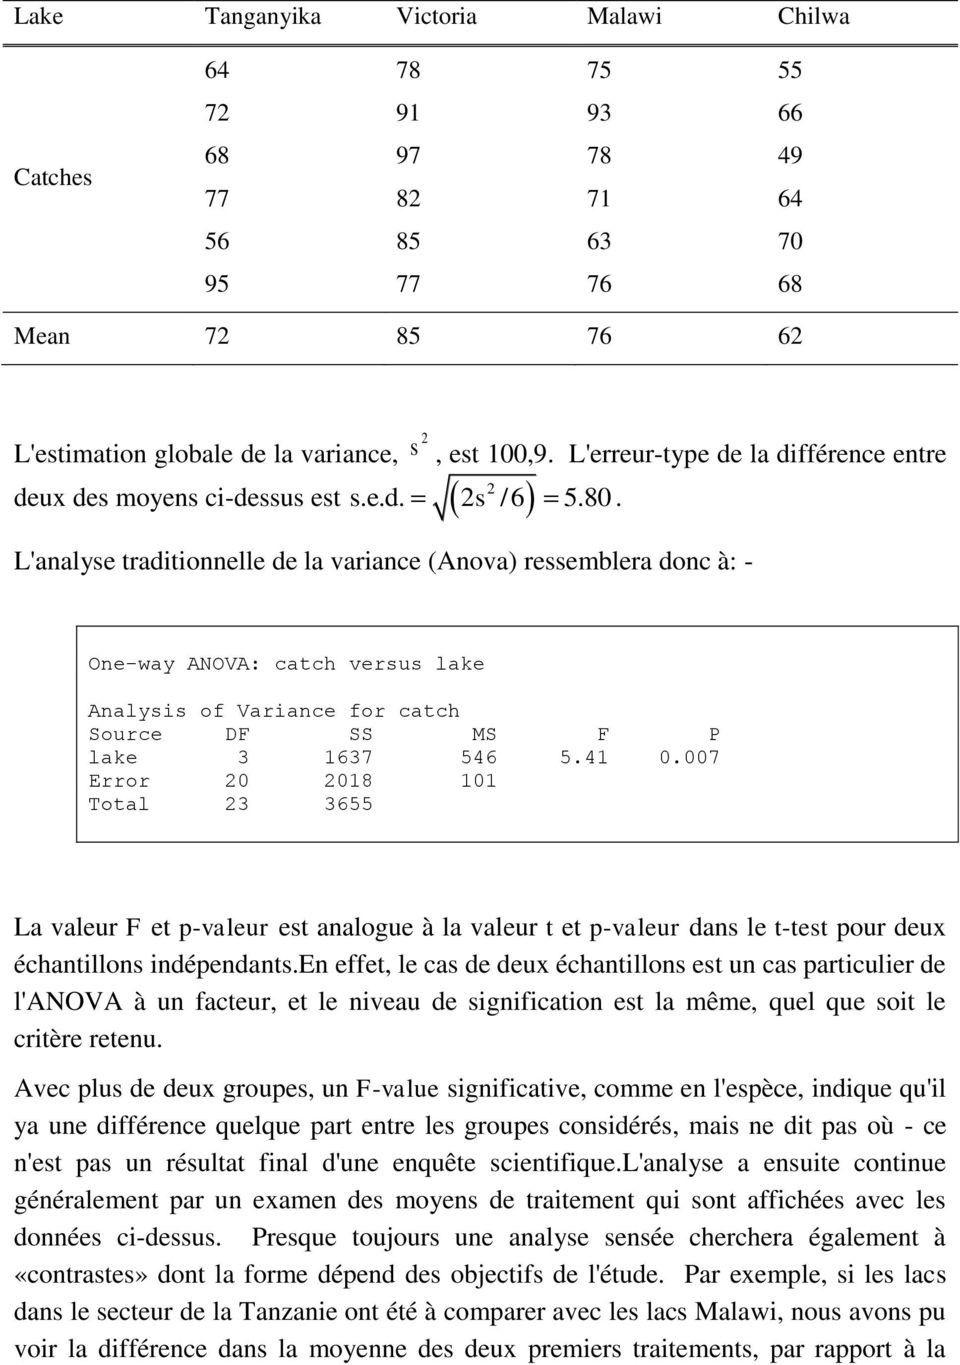 L'analyse traditionnelle de la variance (Anova) ressemblera donc à: - One-way ANOVA: catch versus lake Analysis of Variance for catch Source DF SS MS F P lake 3 1637 546 5.41 0.